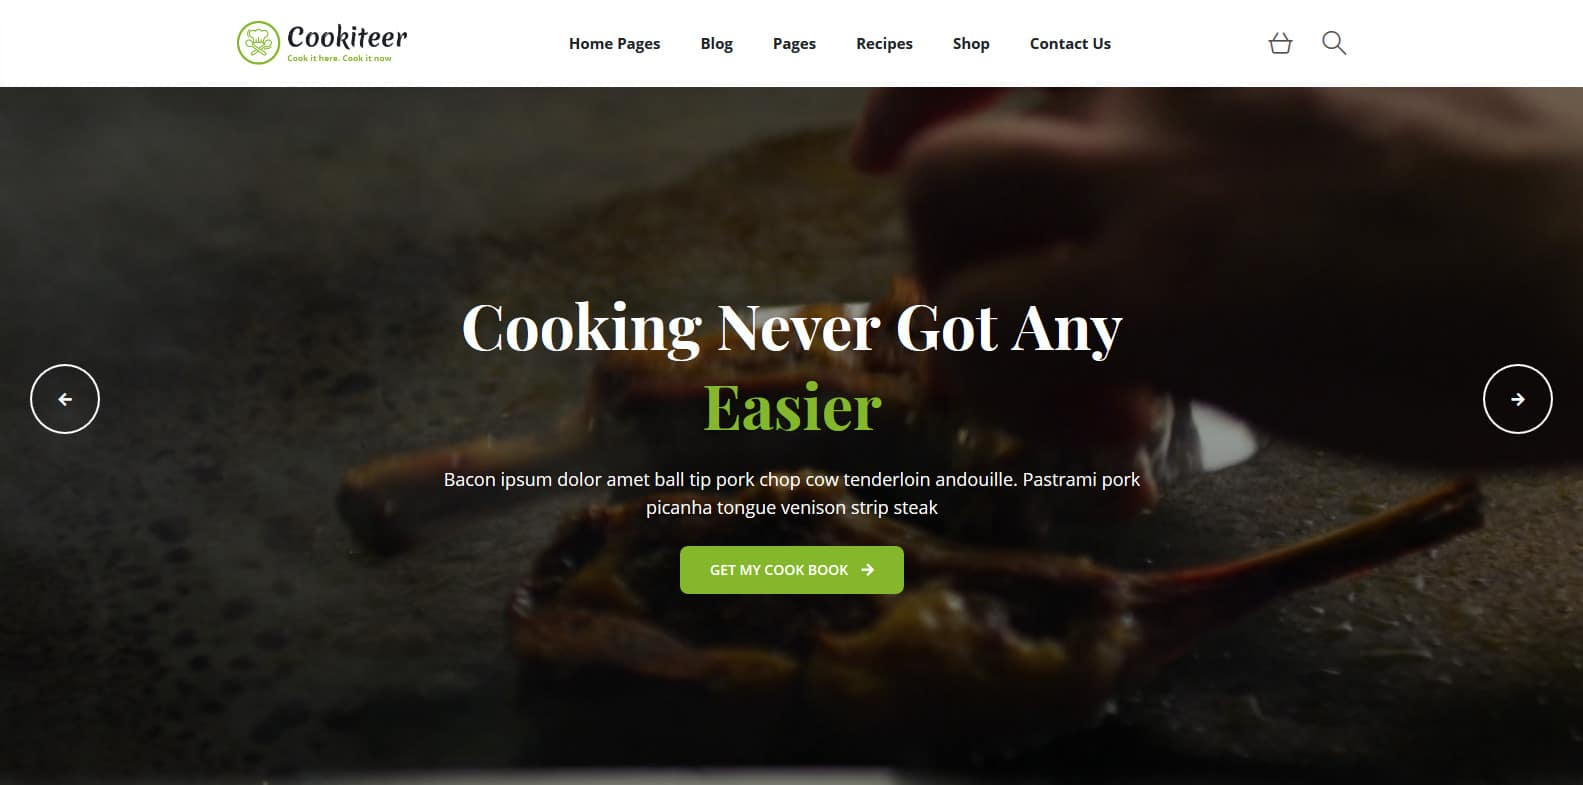 cookiter-food-blog-website